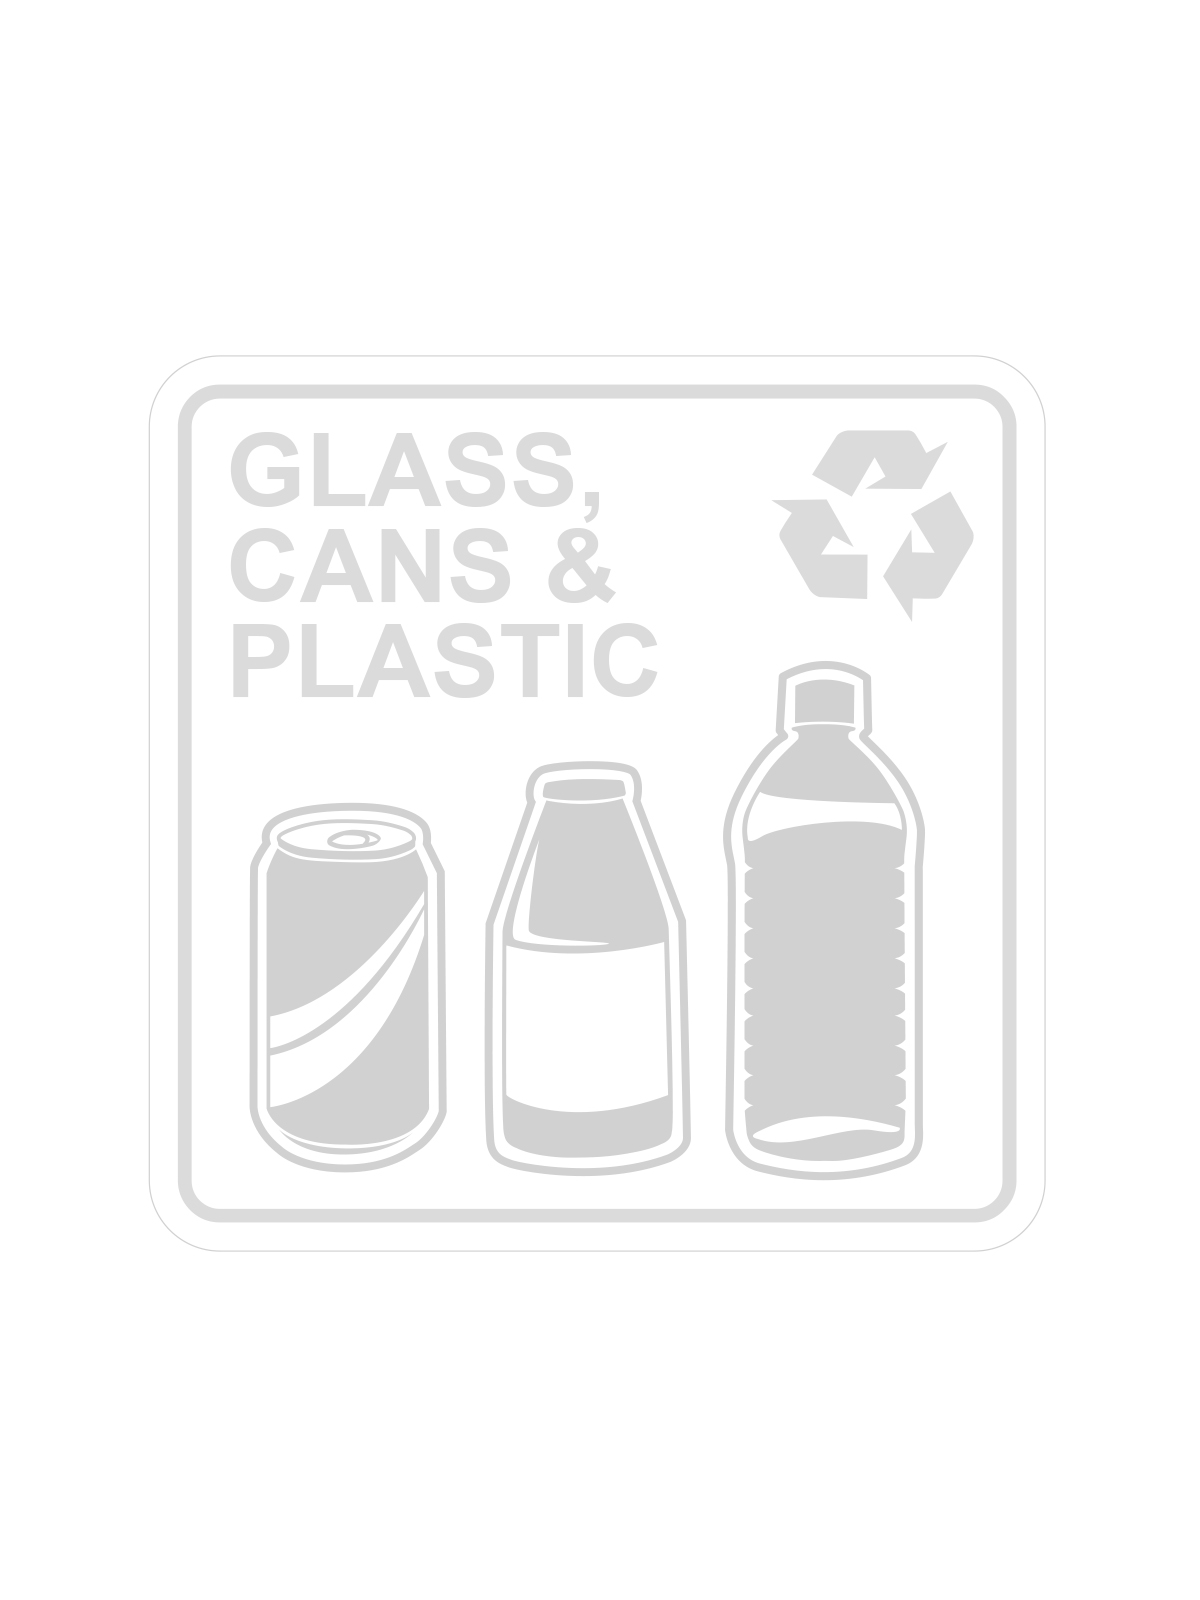 SQUARE LABEL GLASS, CANS & PLASTIC ONLY